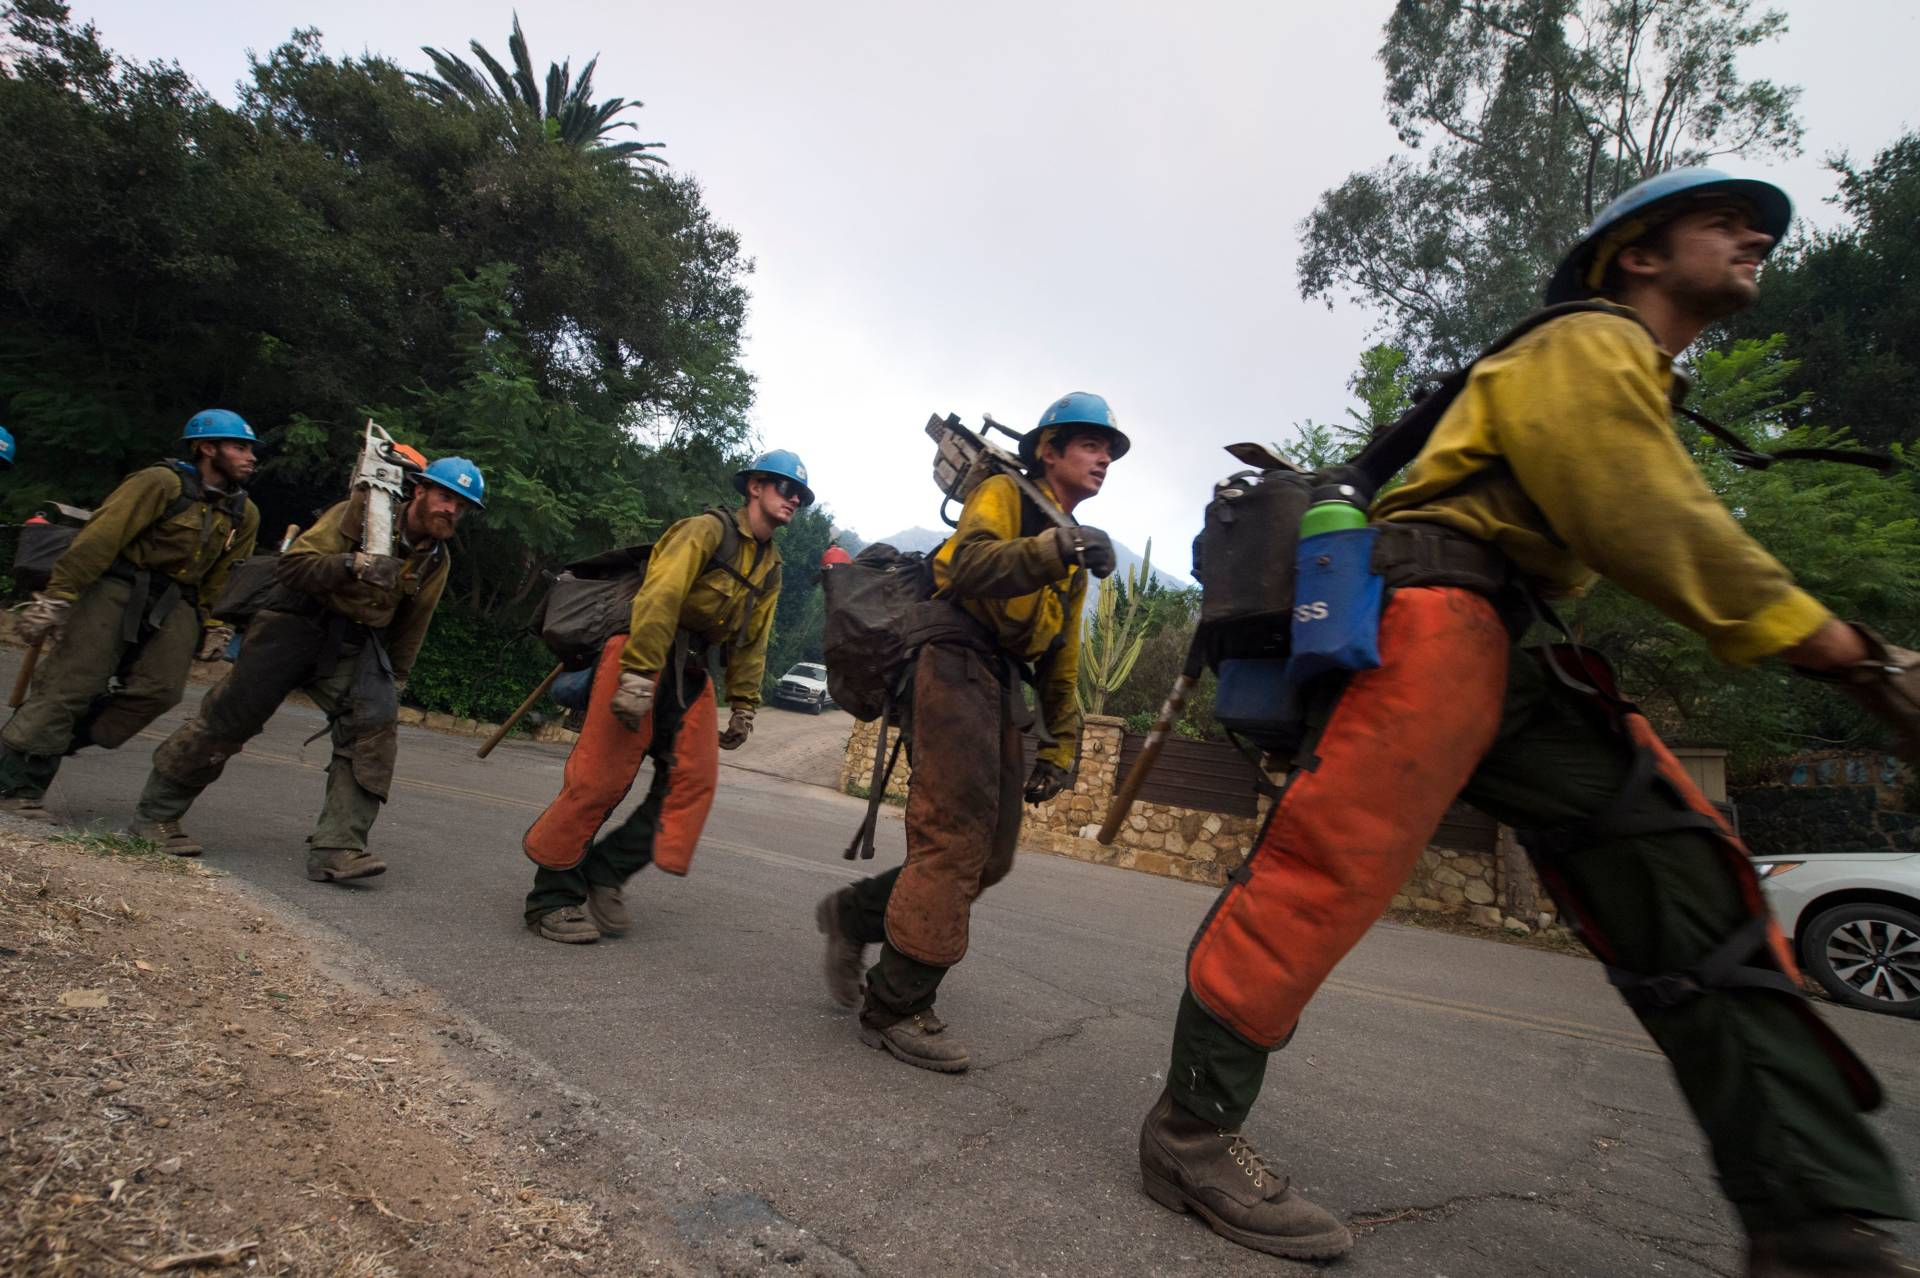 A firefighting hand crew moves into position to put out hotspots in Montecito, California, at the Thomas Fire on Dec. 16, 2017. Robyn Beck/AFP/Getty Images